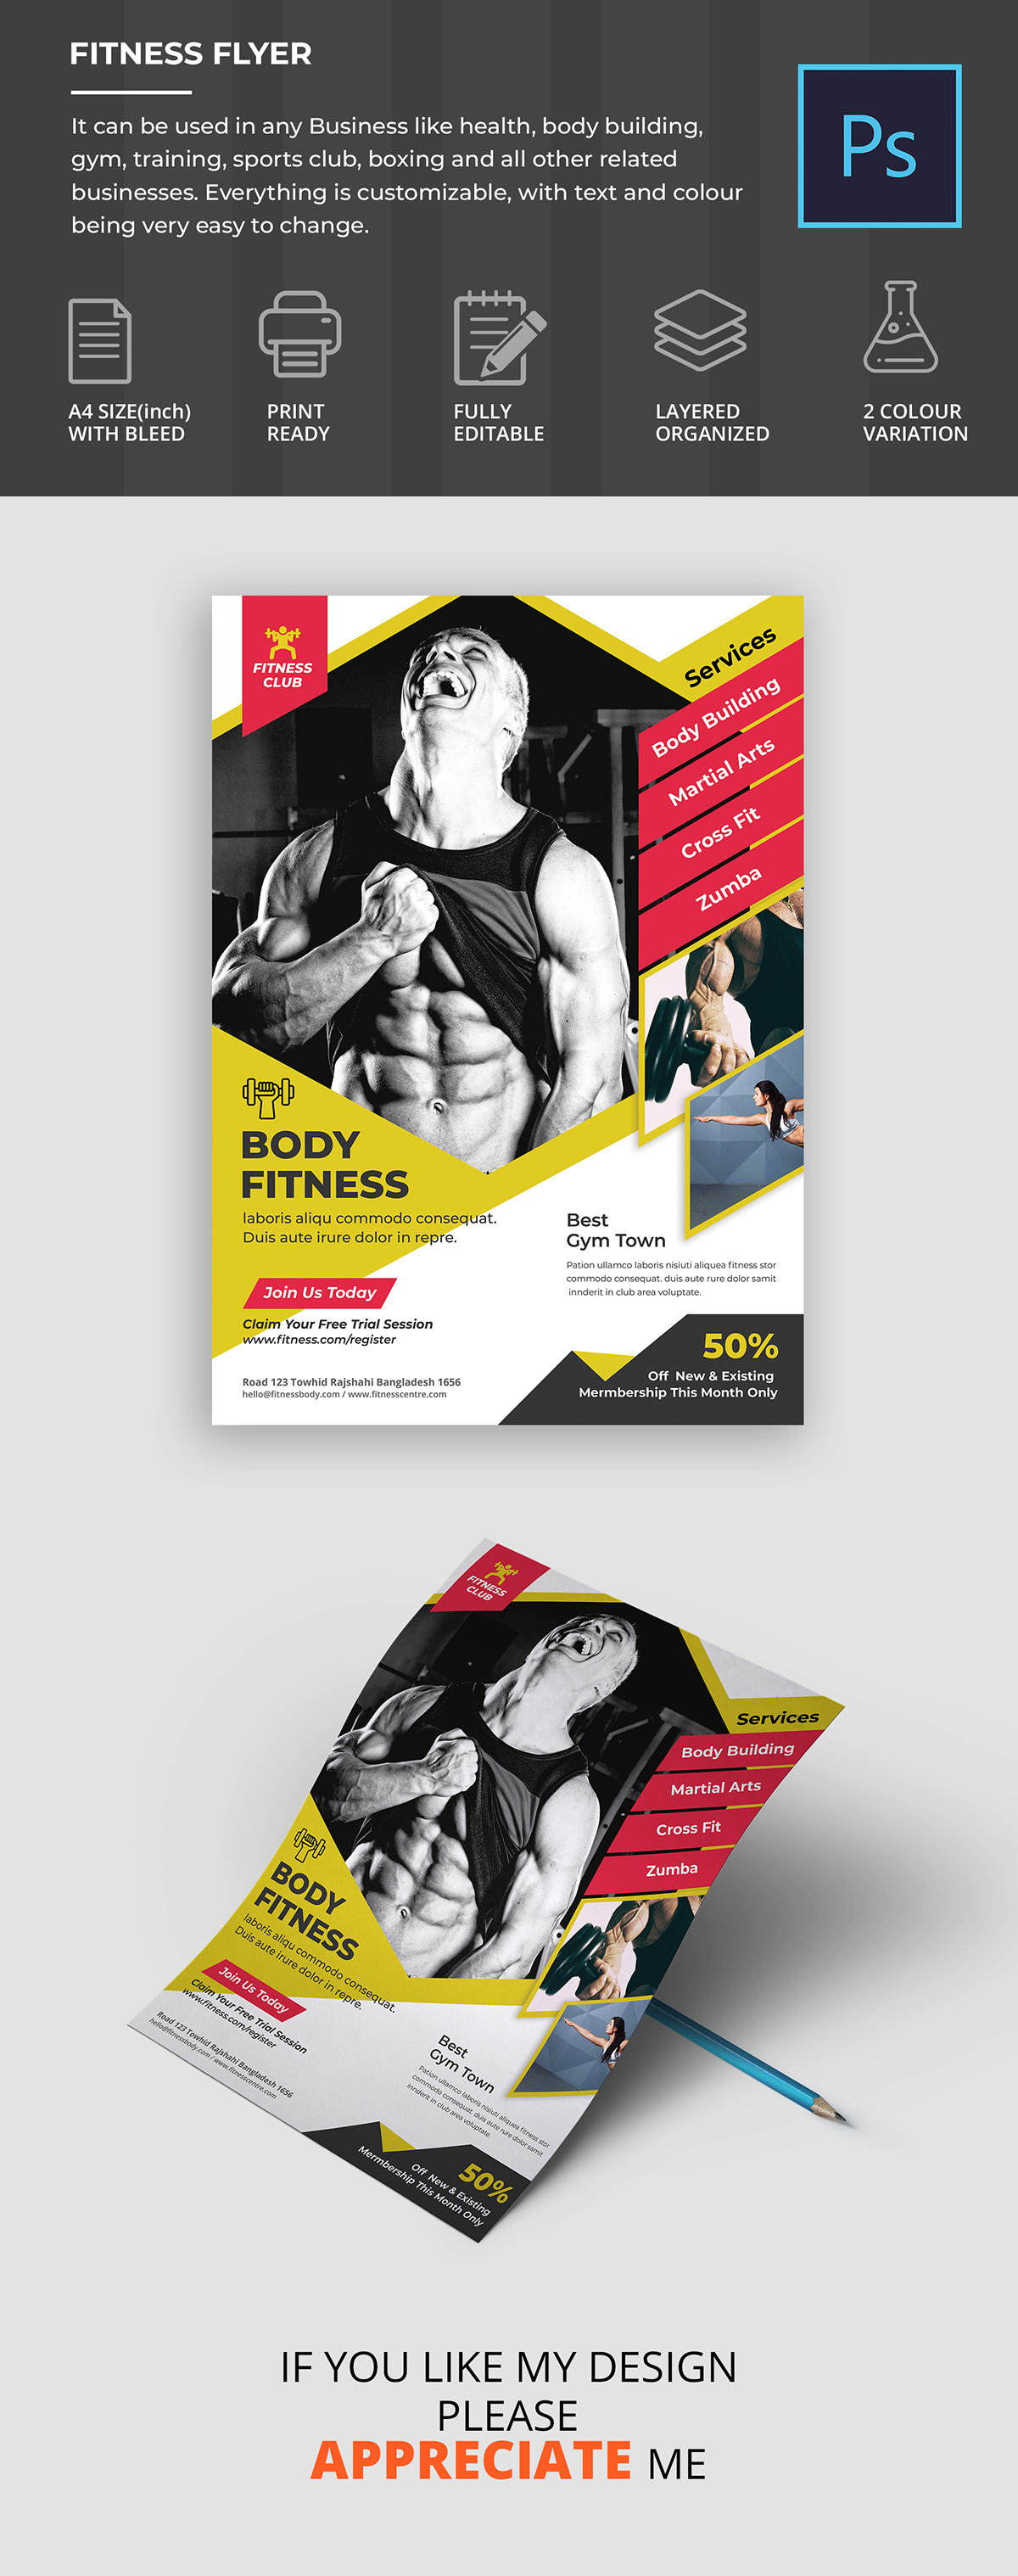 Fitness Flyer on Student Show